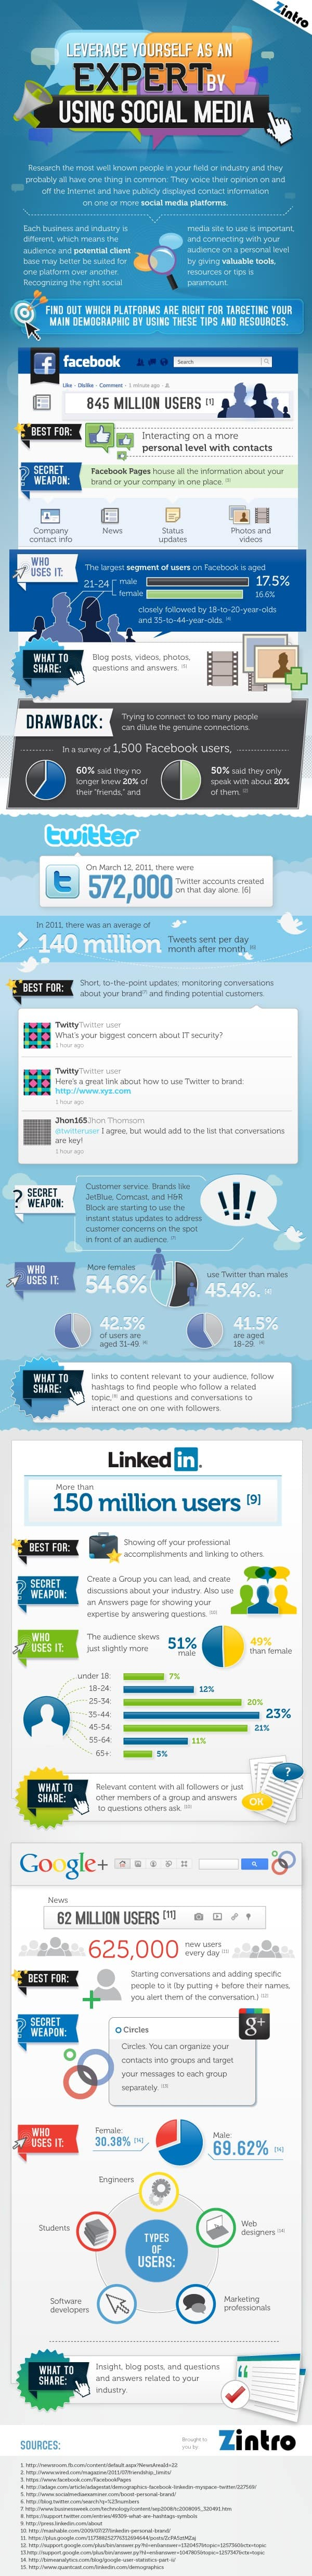 Leveraging Social Media to Showcase Your Expertise INFOGRAPHIC